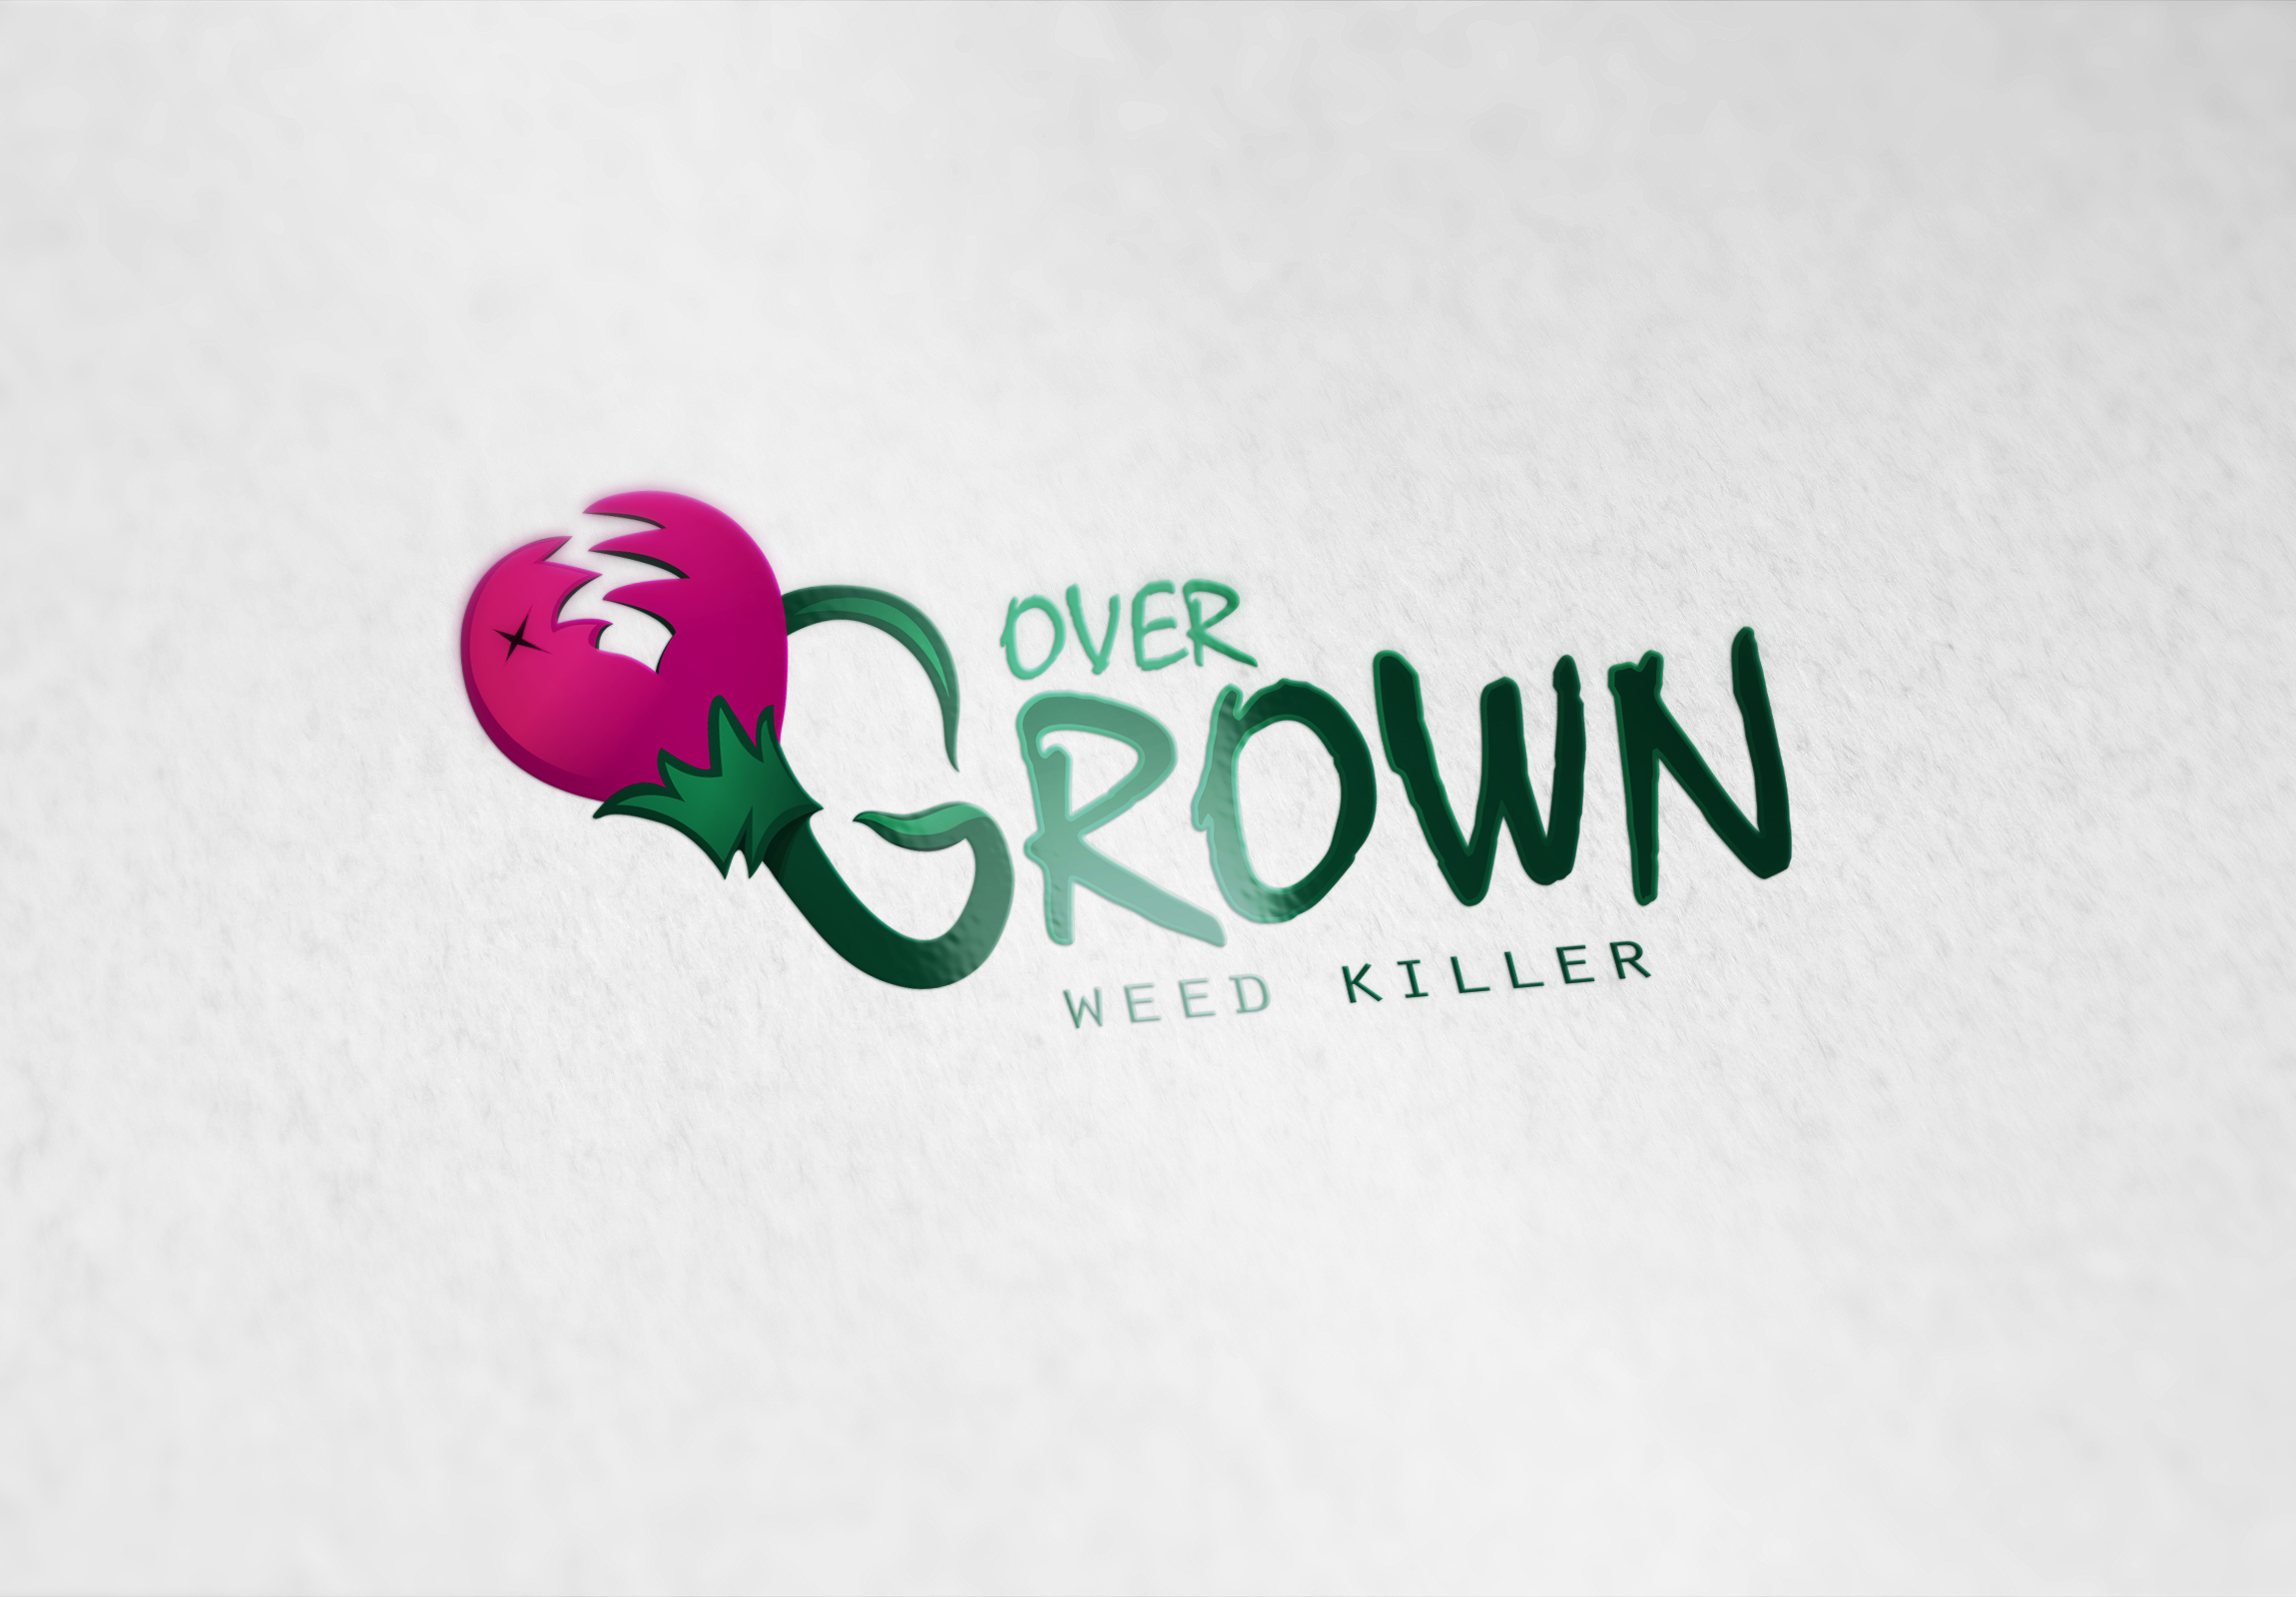 Over Grown